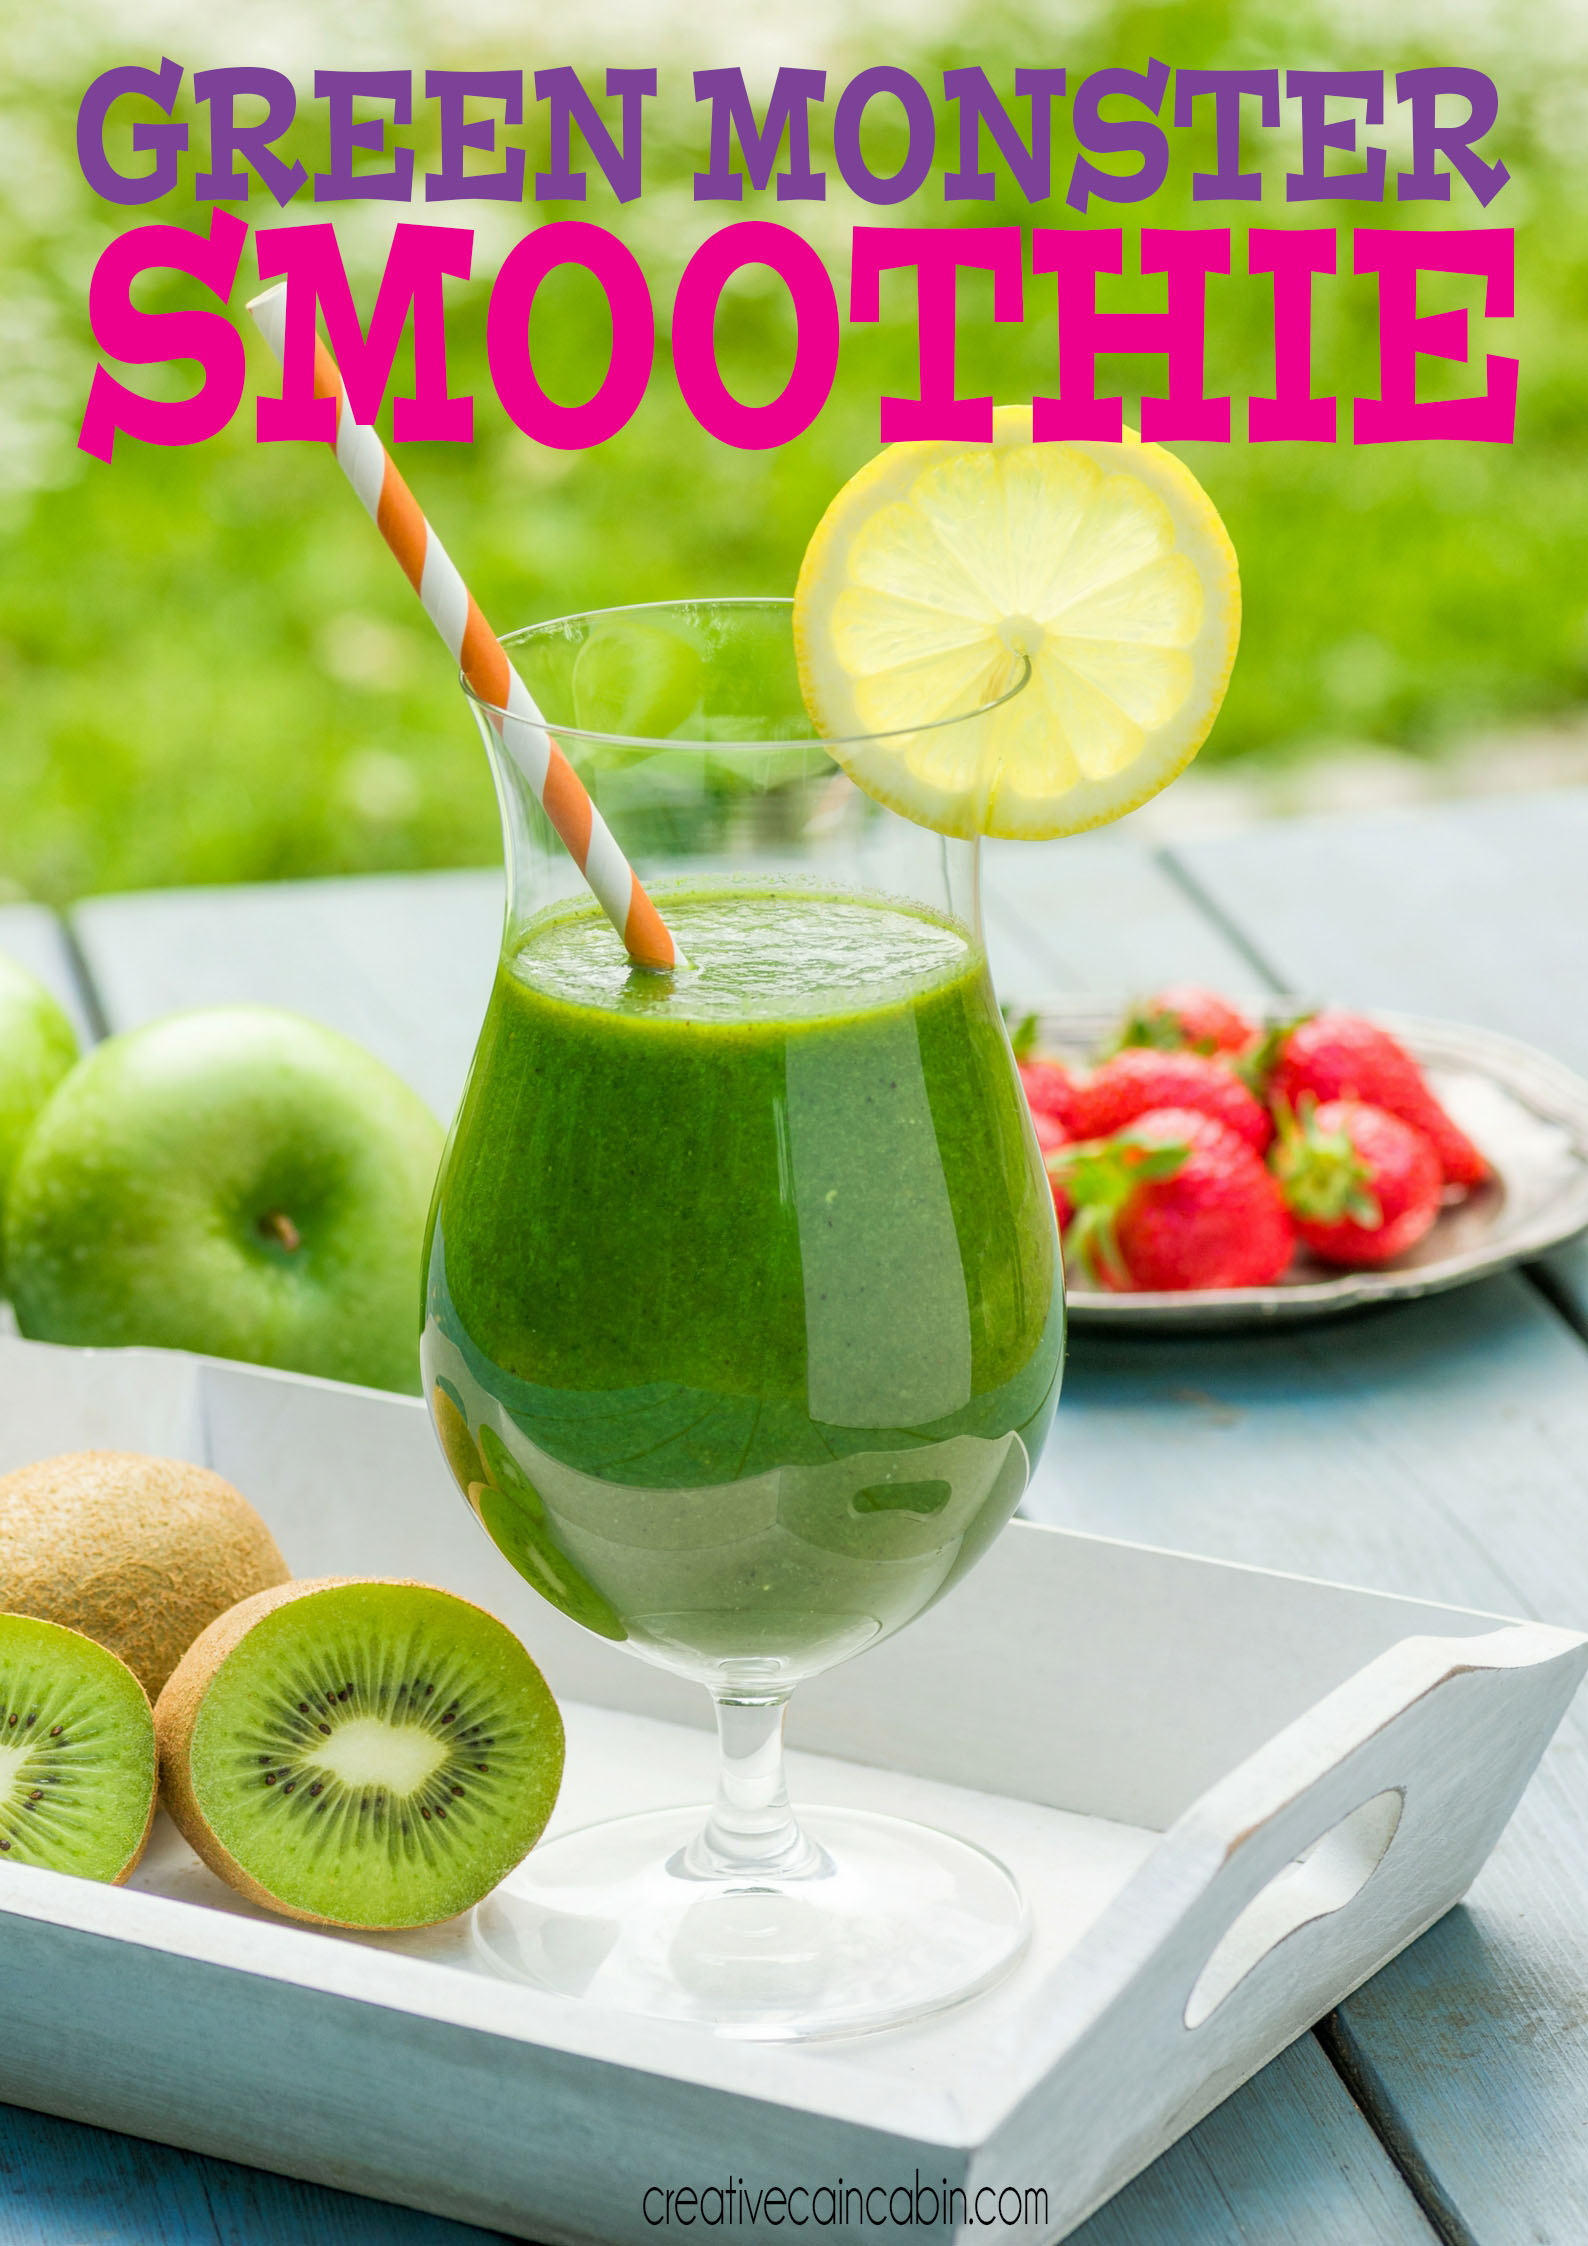 Green Monster Smoothie Recipe, Great For Kids, Easy To Make, Packed Full of Fruit and Veggies For a Simple On The Go Meal